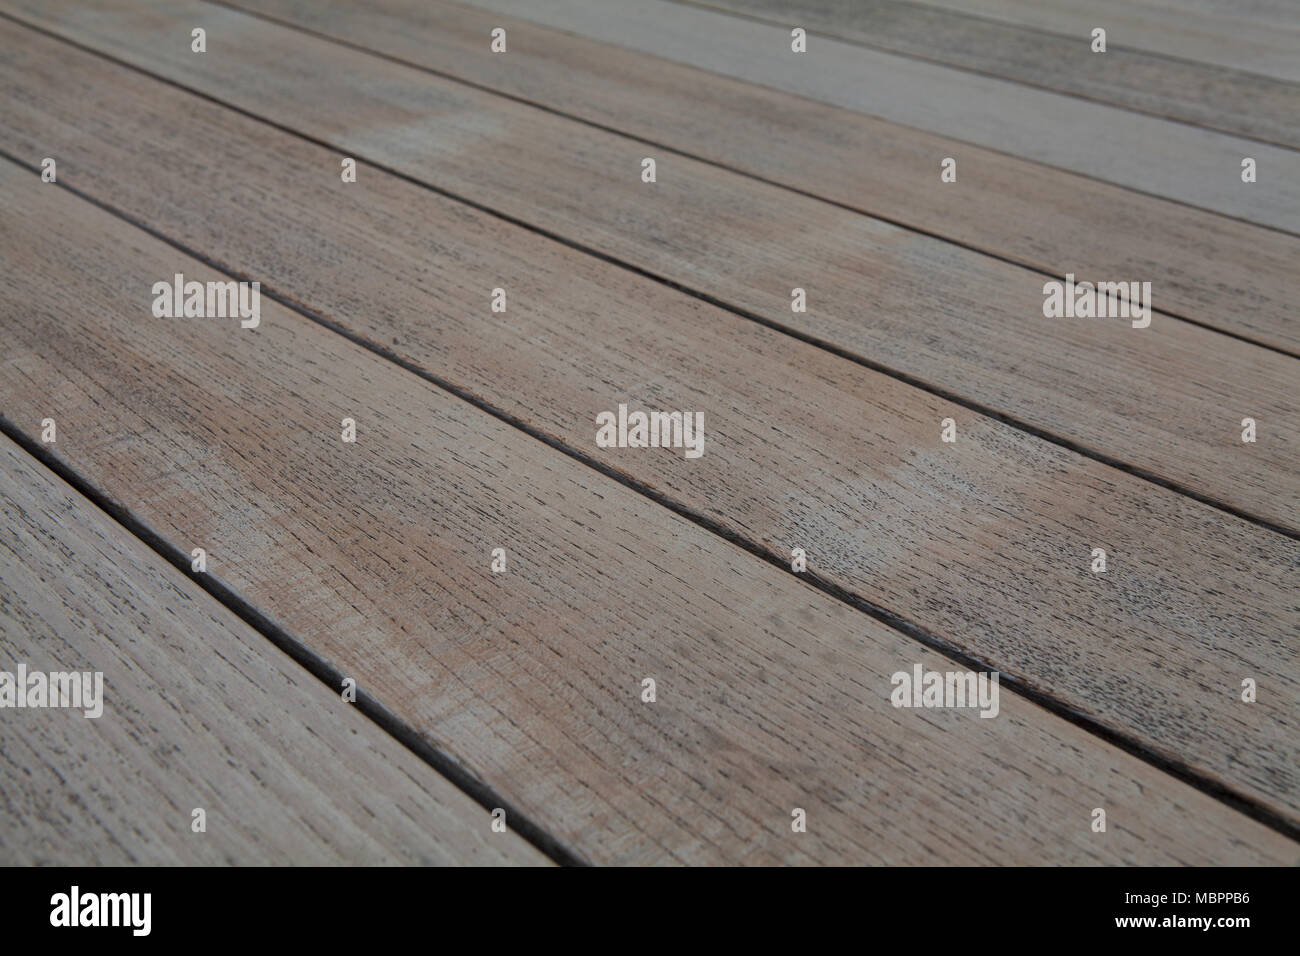 A slightly weathered teak wood garden table, abstract texture, could also be used to illustrate other exterior wooden surfaces including decking - Stock Image